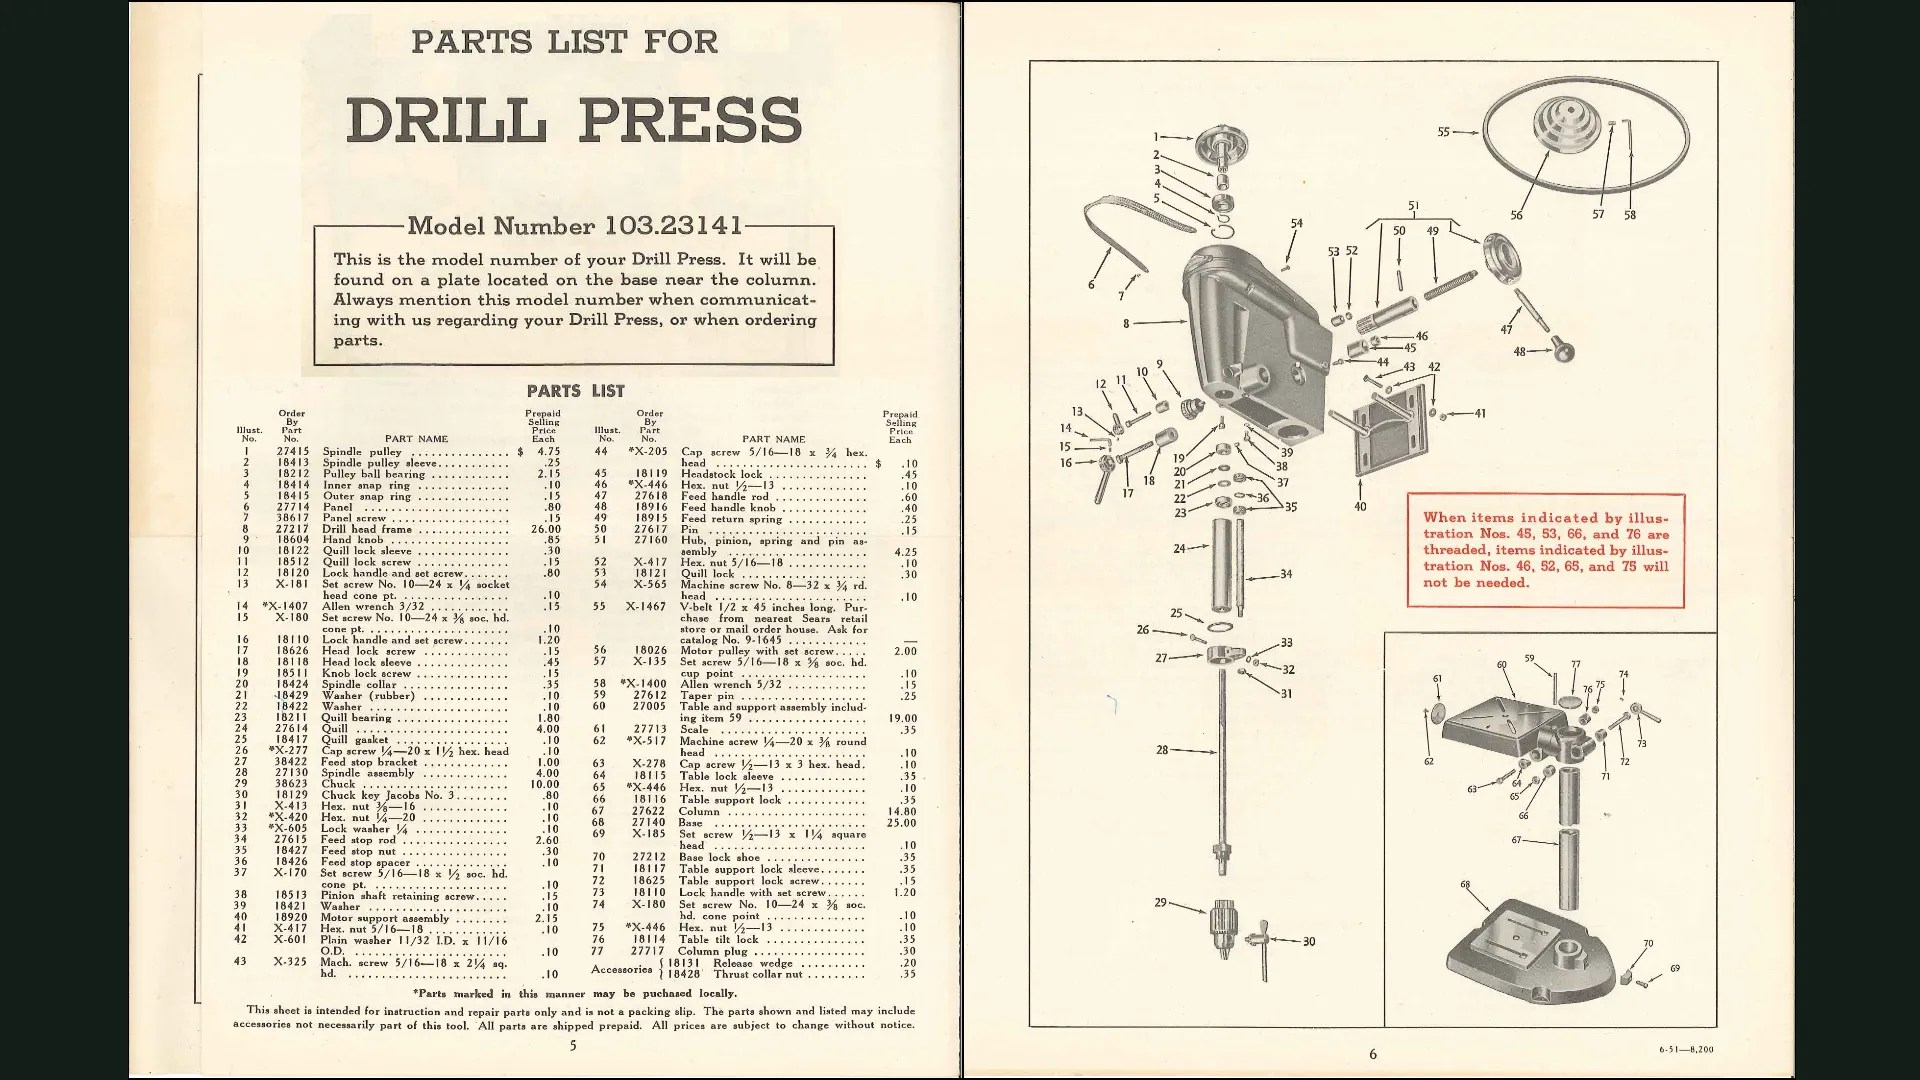 hight resolution of parts list and exploded diagram for craftsman 103 23141 model 100 drill press